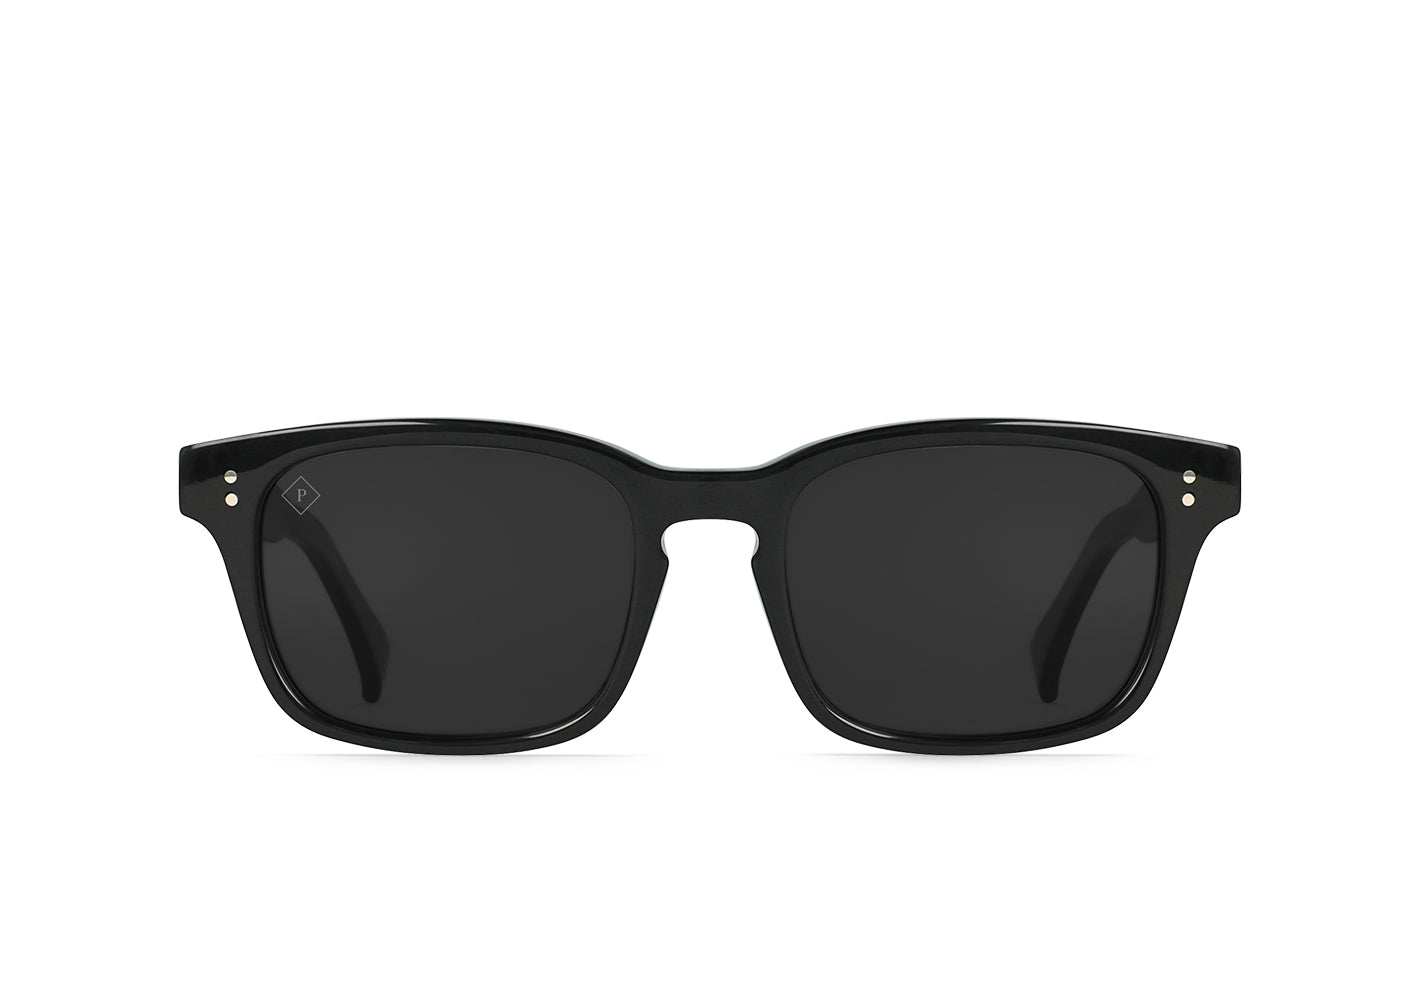 Crystal Black / Dark Smoke Polarized